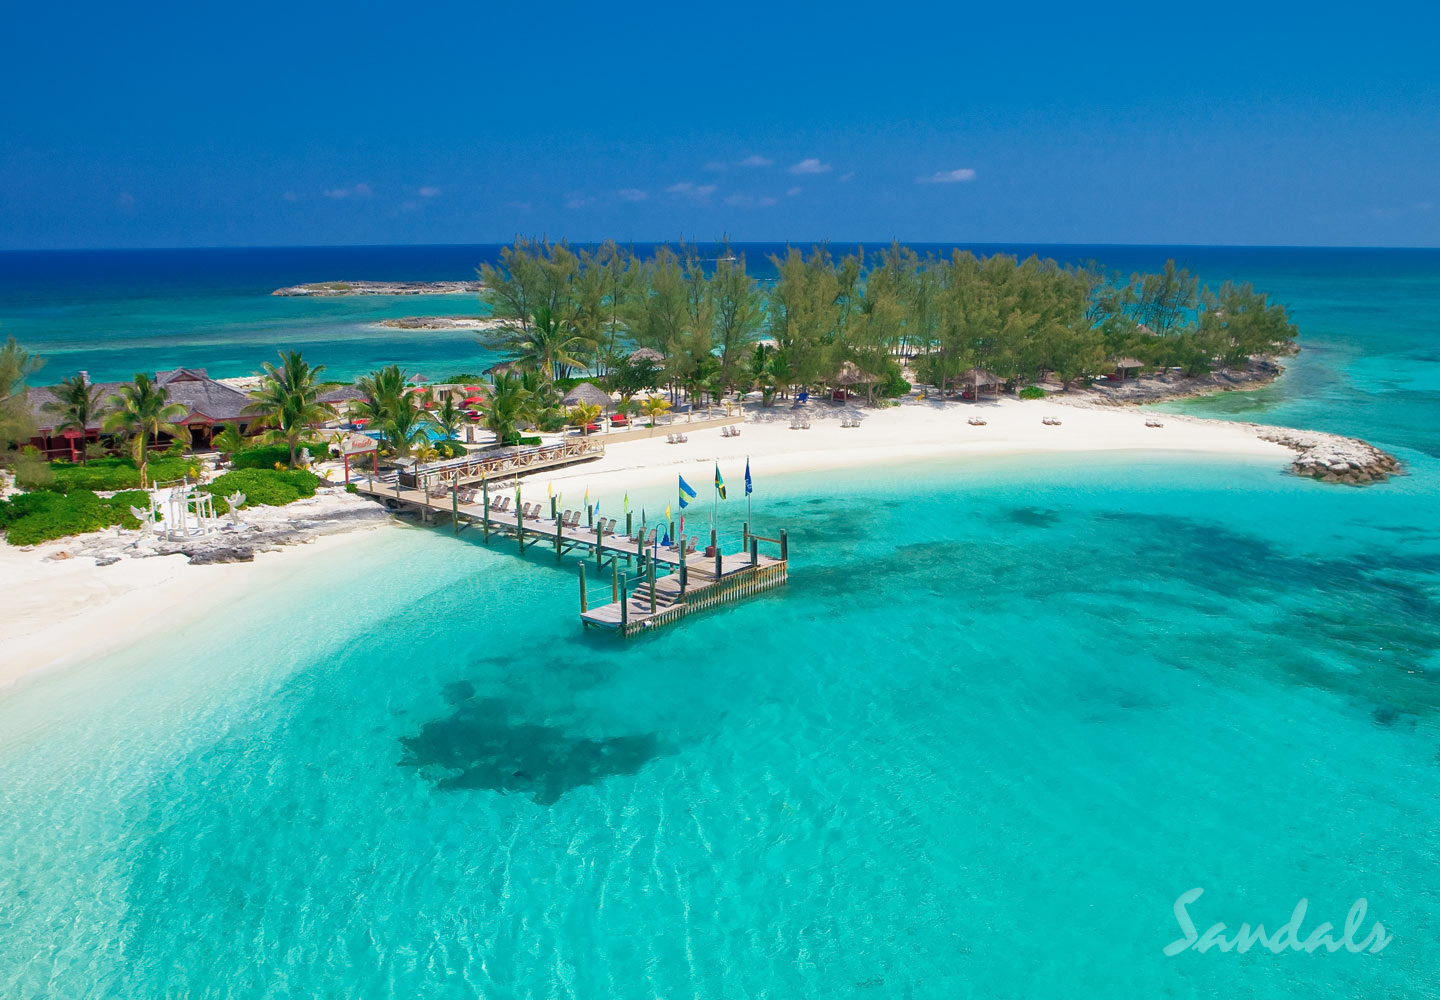 Travel Agency All-Inclusive Resort Sandals Royal Bahamian 010